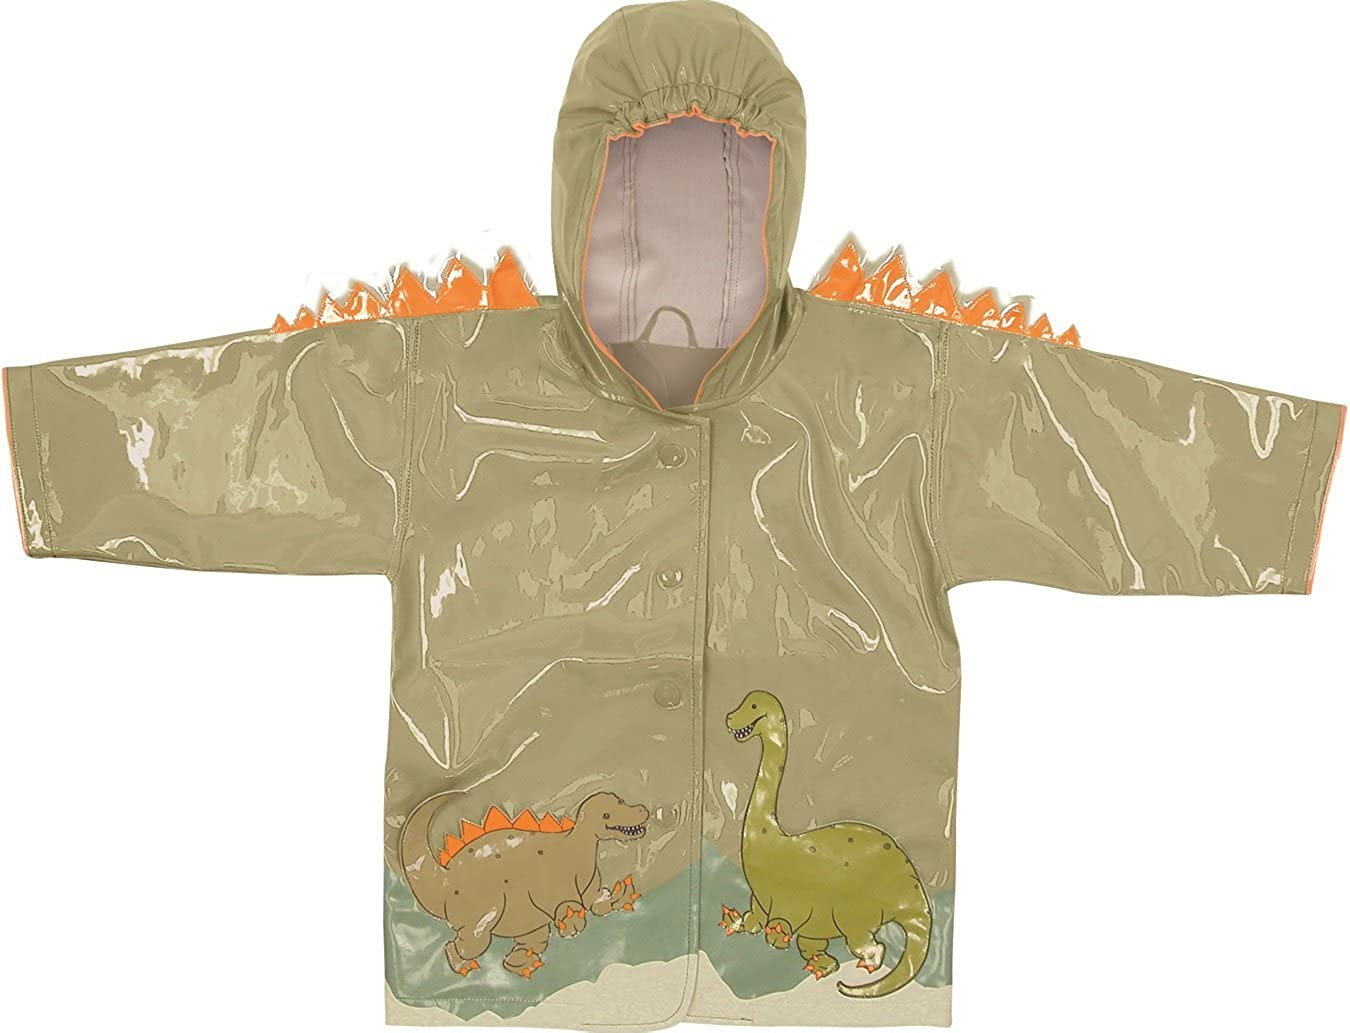 Kidorable Dinosaur Raincoat 92/98 KID-RC-DINO-92-98